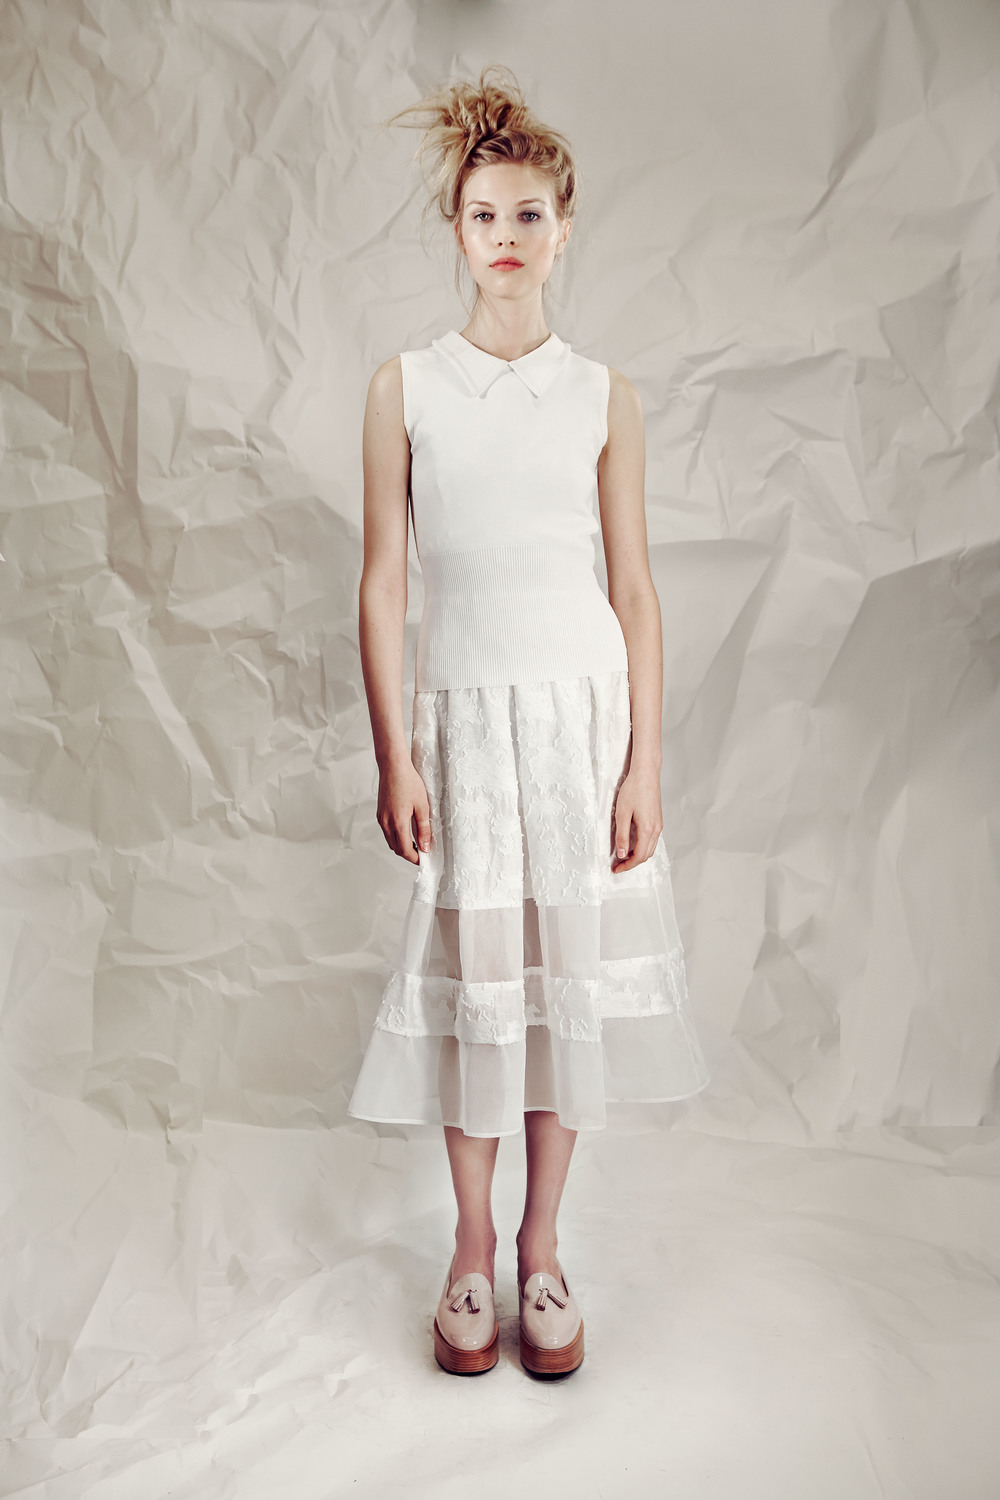 TIMO WEILAND RESORT 15 LOOK 15.jpg